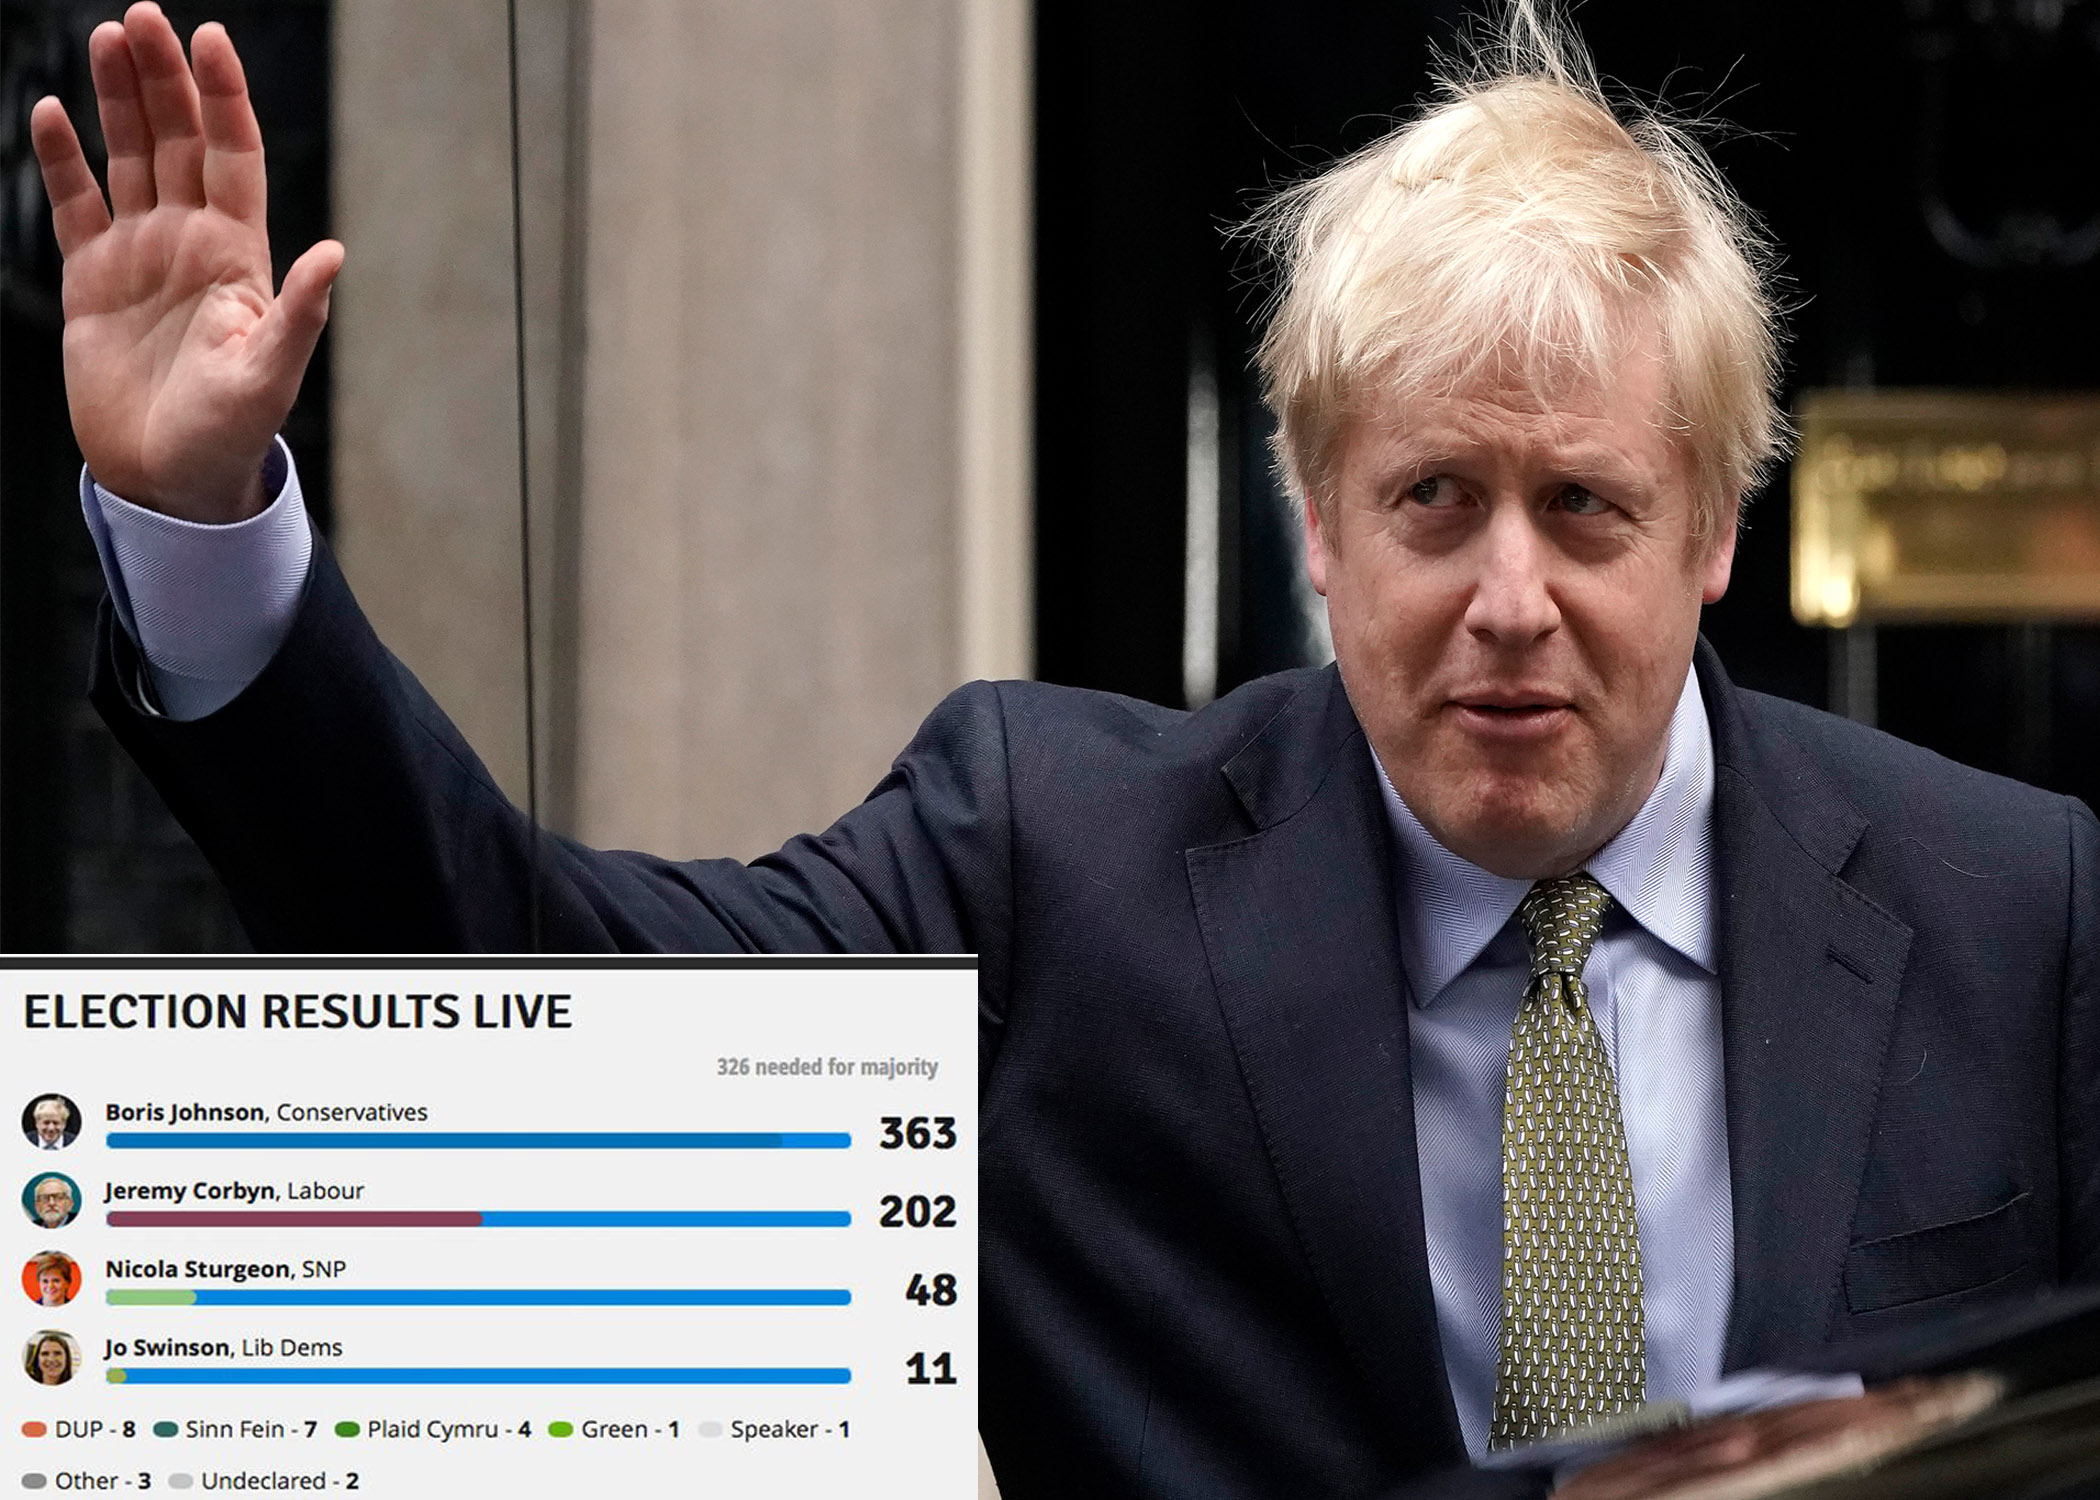 PM Boris Johnson's historic victory in UK elections ascertains campaign promise to 'get Brexit done'